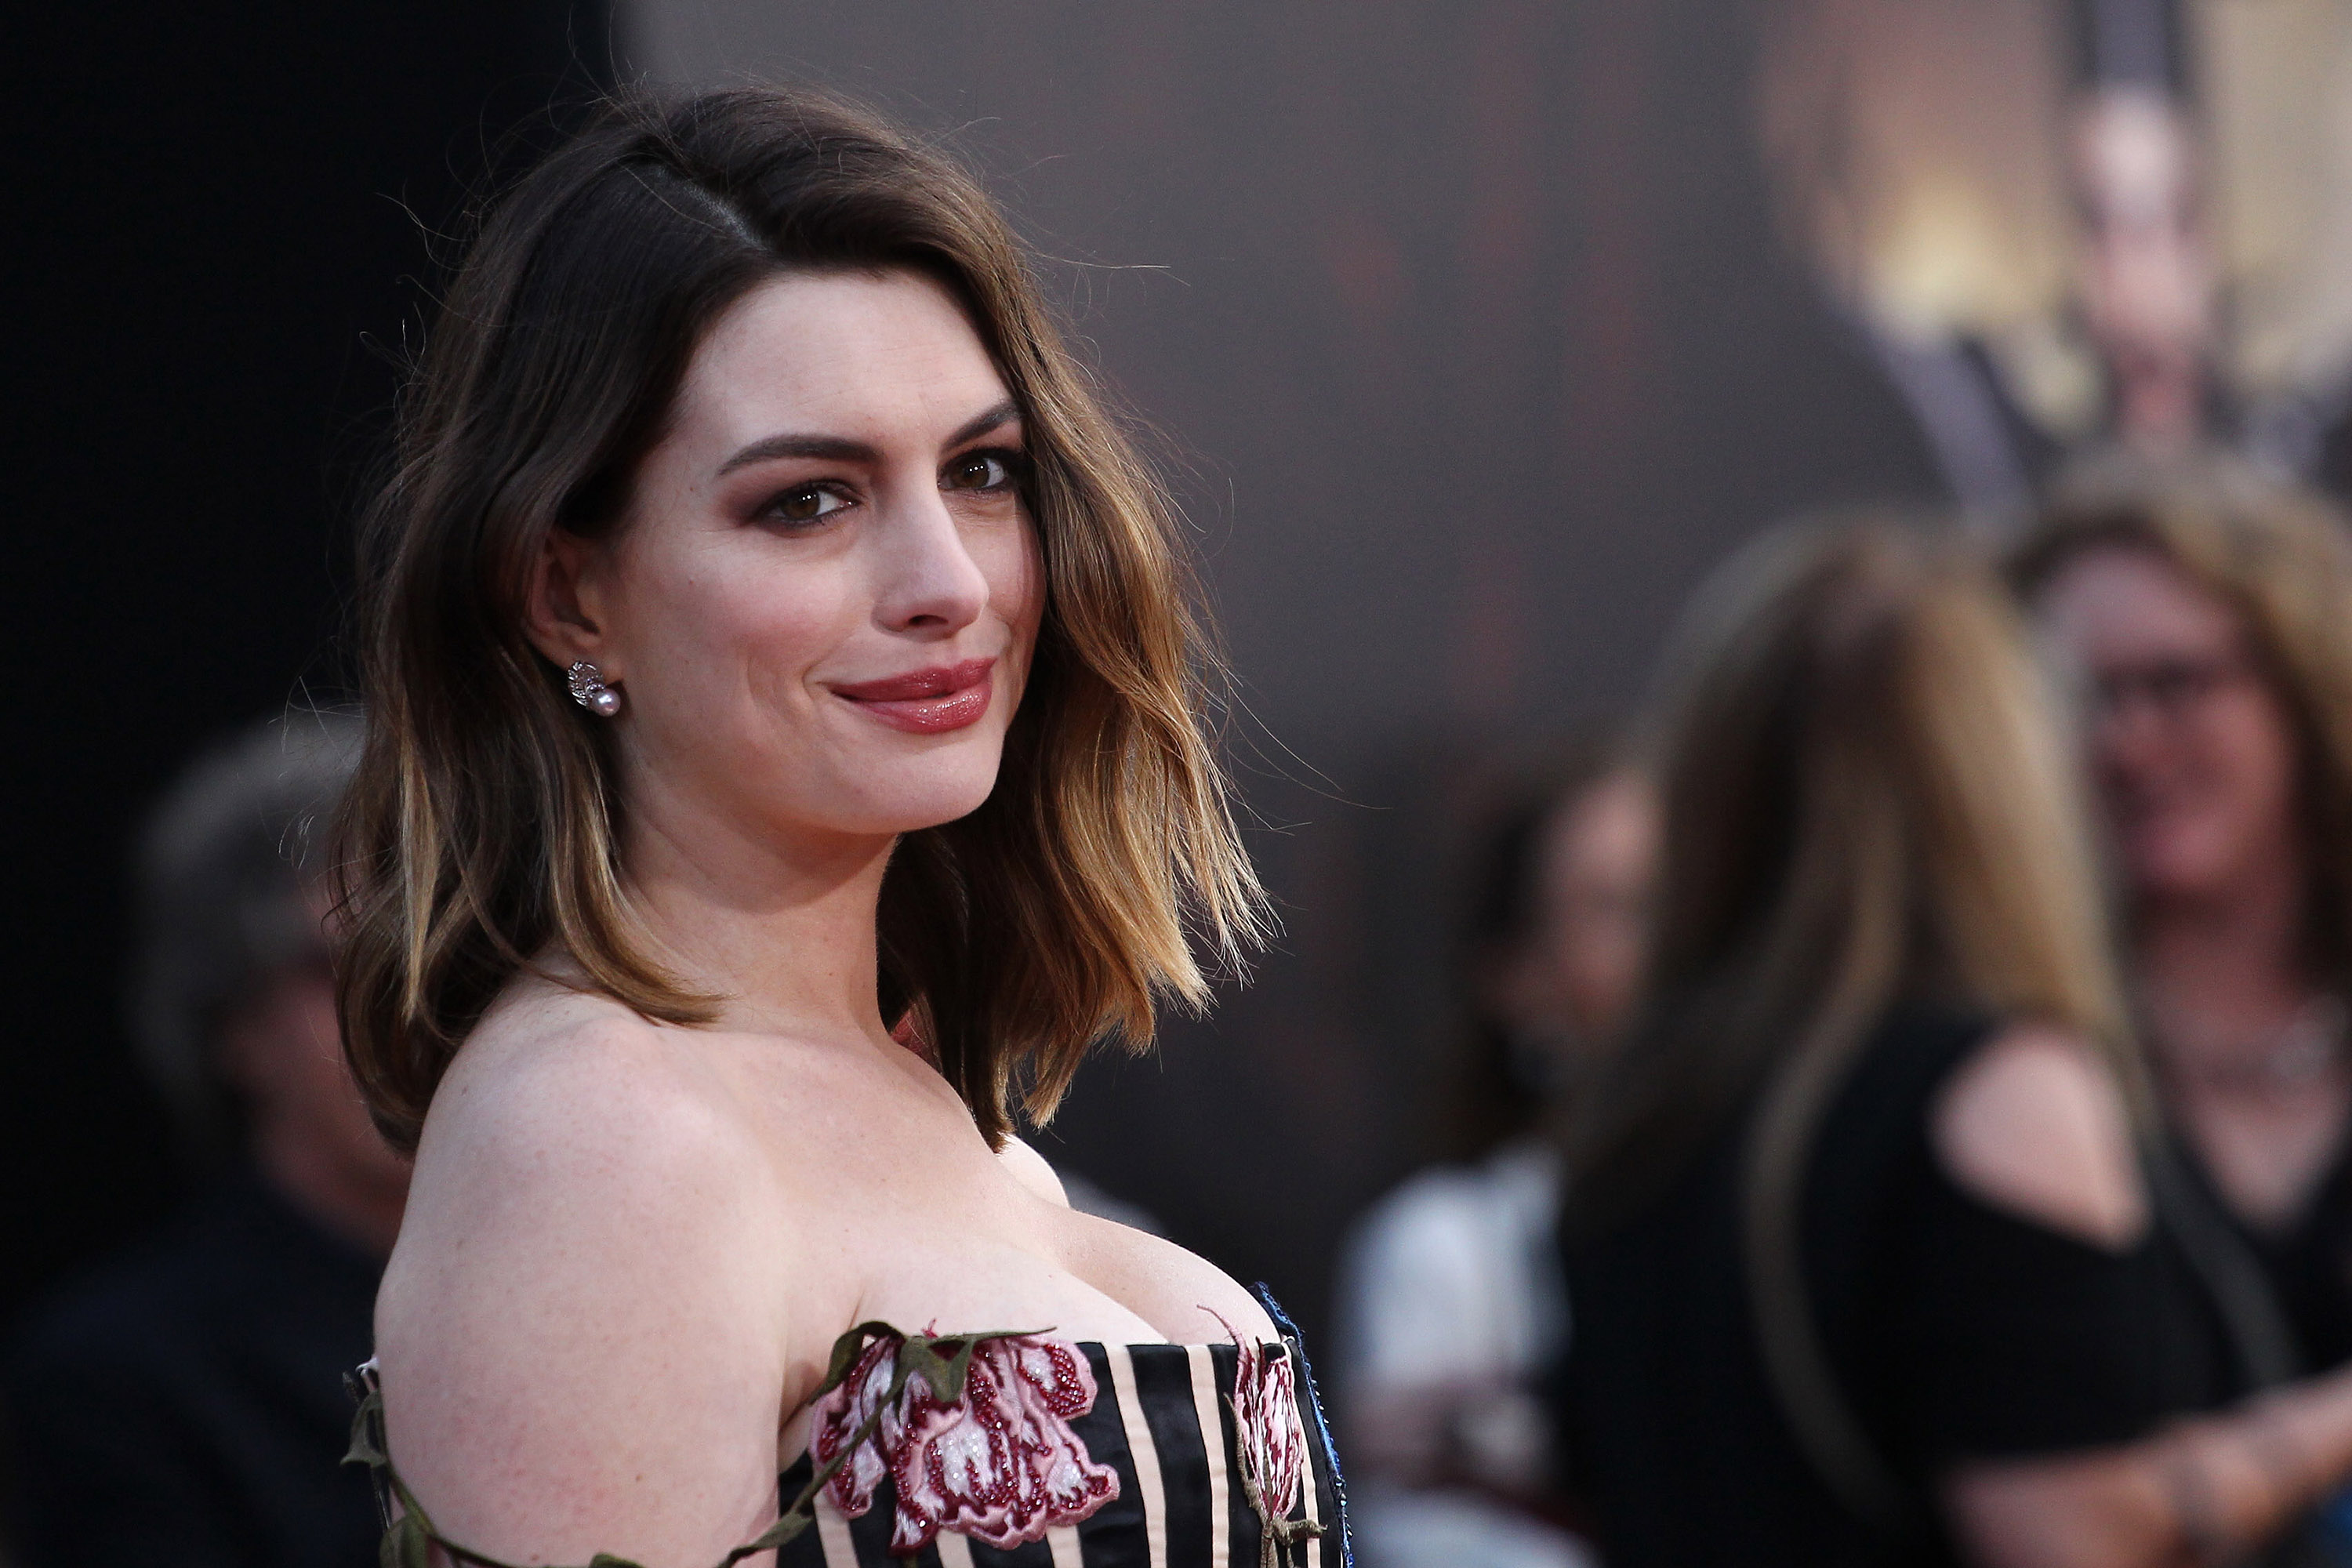 Actress Anne Hathaway attends the premiere of Disney's  Alice Through The Looking Glass  at the El Capitan Theatre on May 23, 2016 in Hollywood, California.